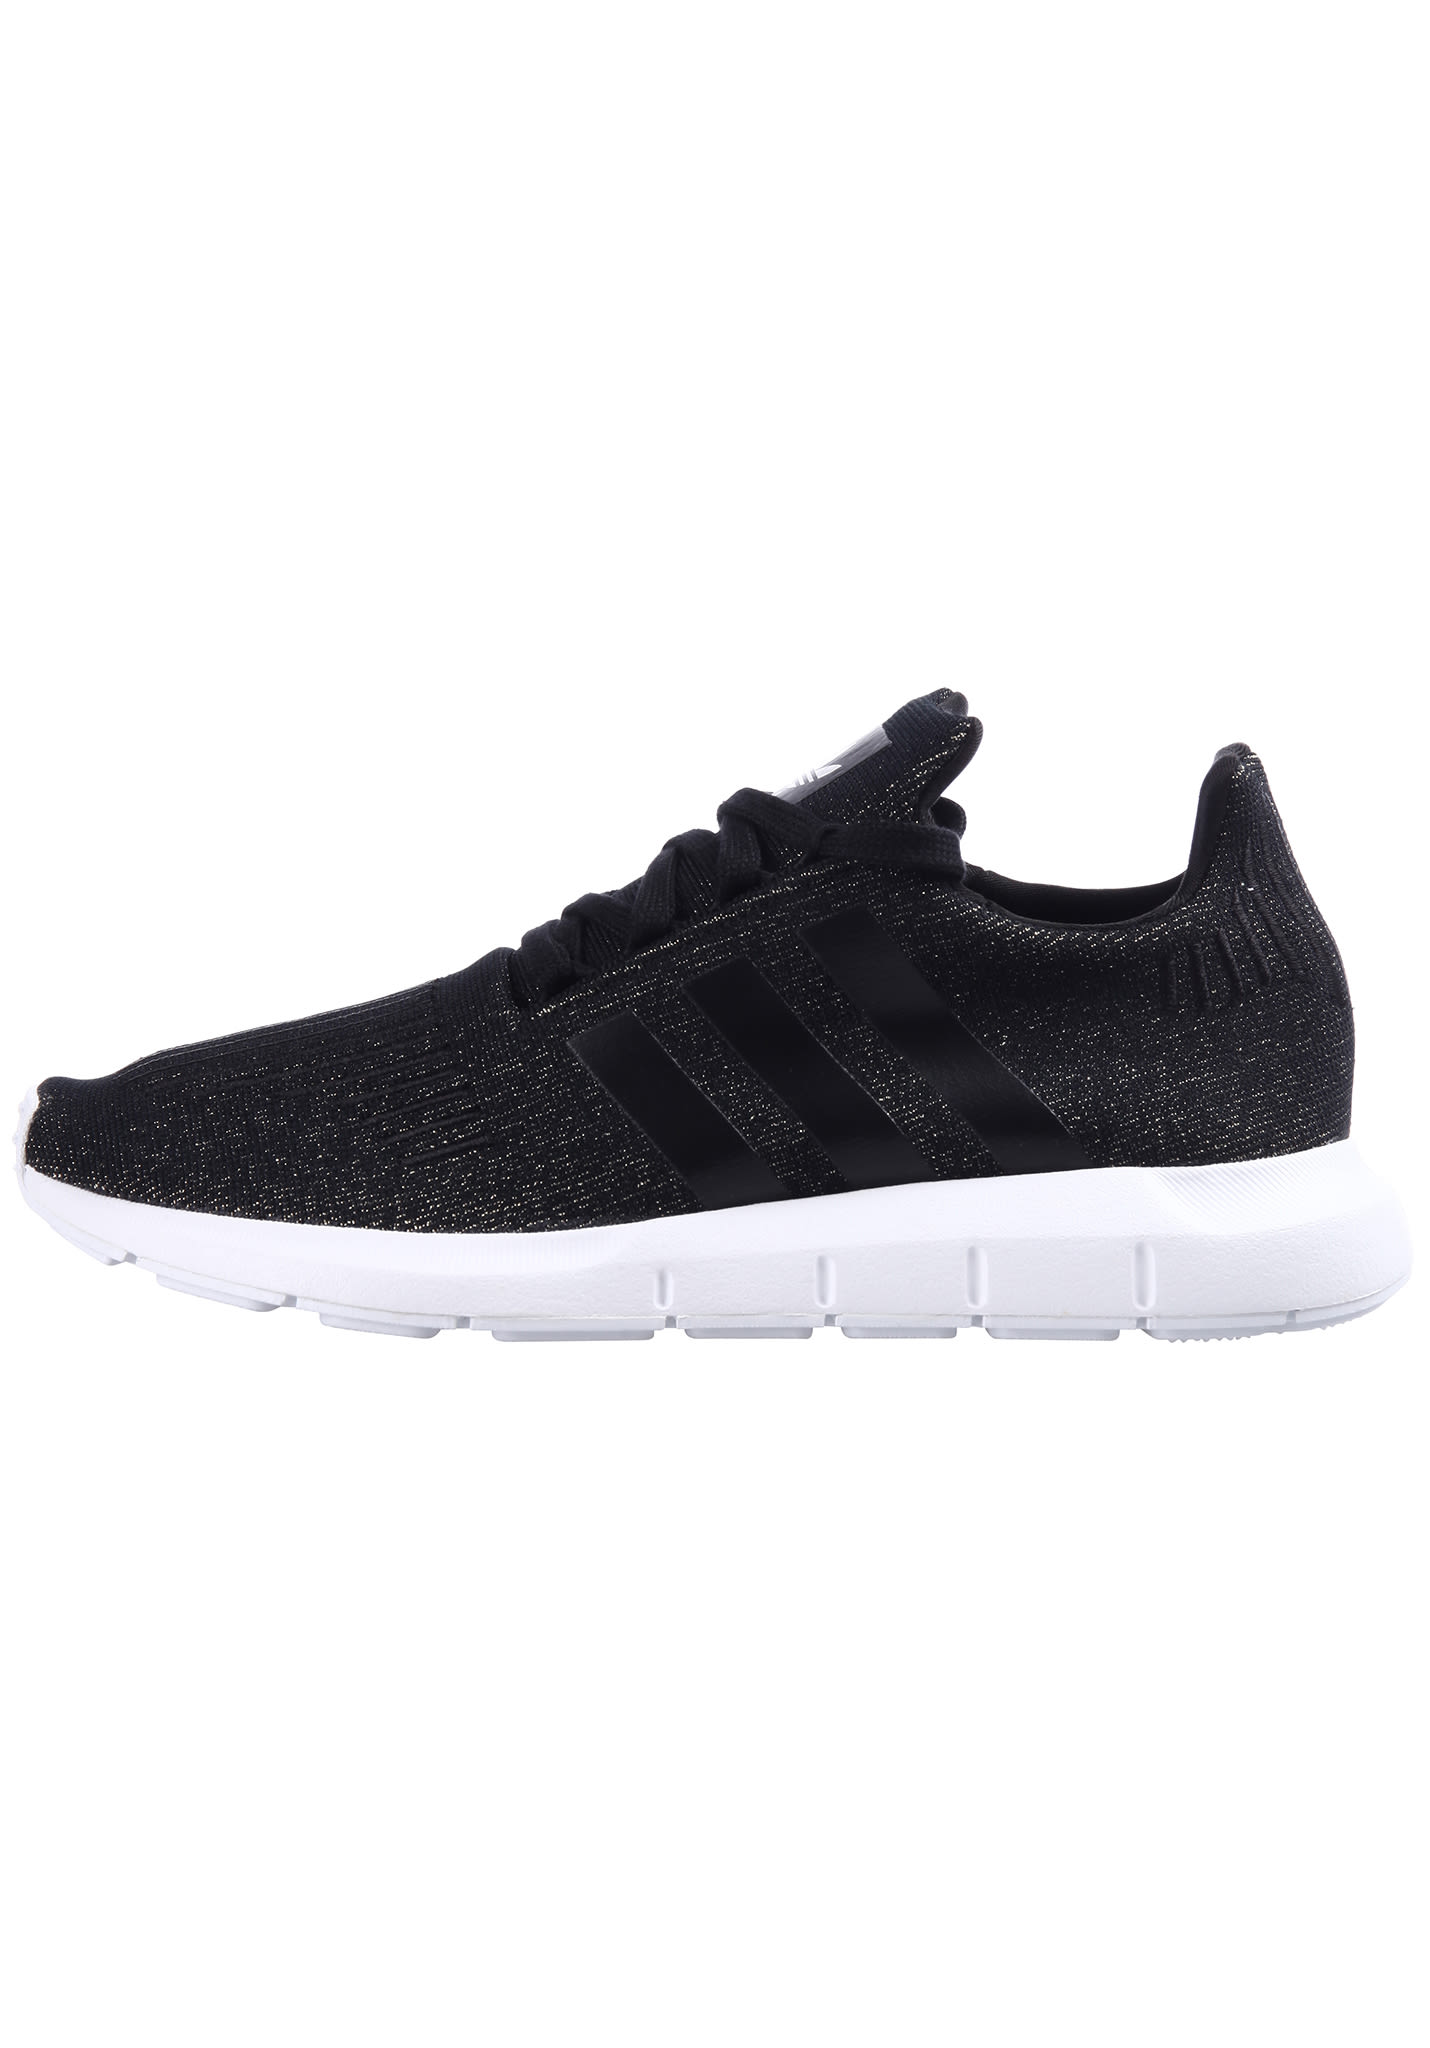 1c04a2c8937 ADIDAS ORIGINALS Swift Run - Sneakers for Women - Black - Planet Sports